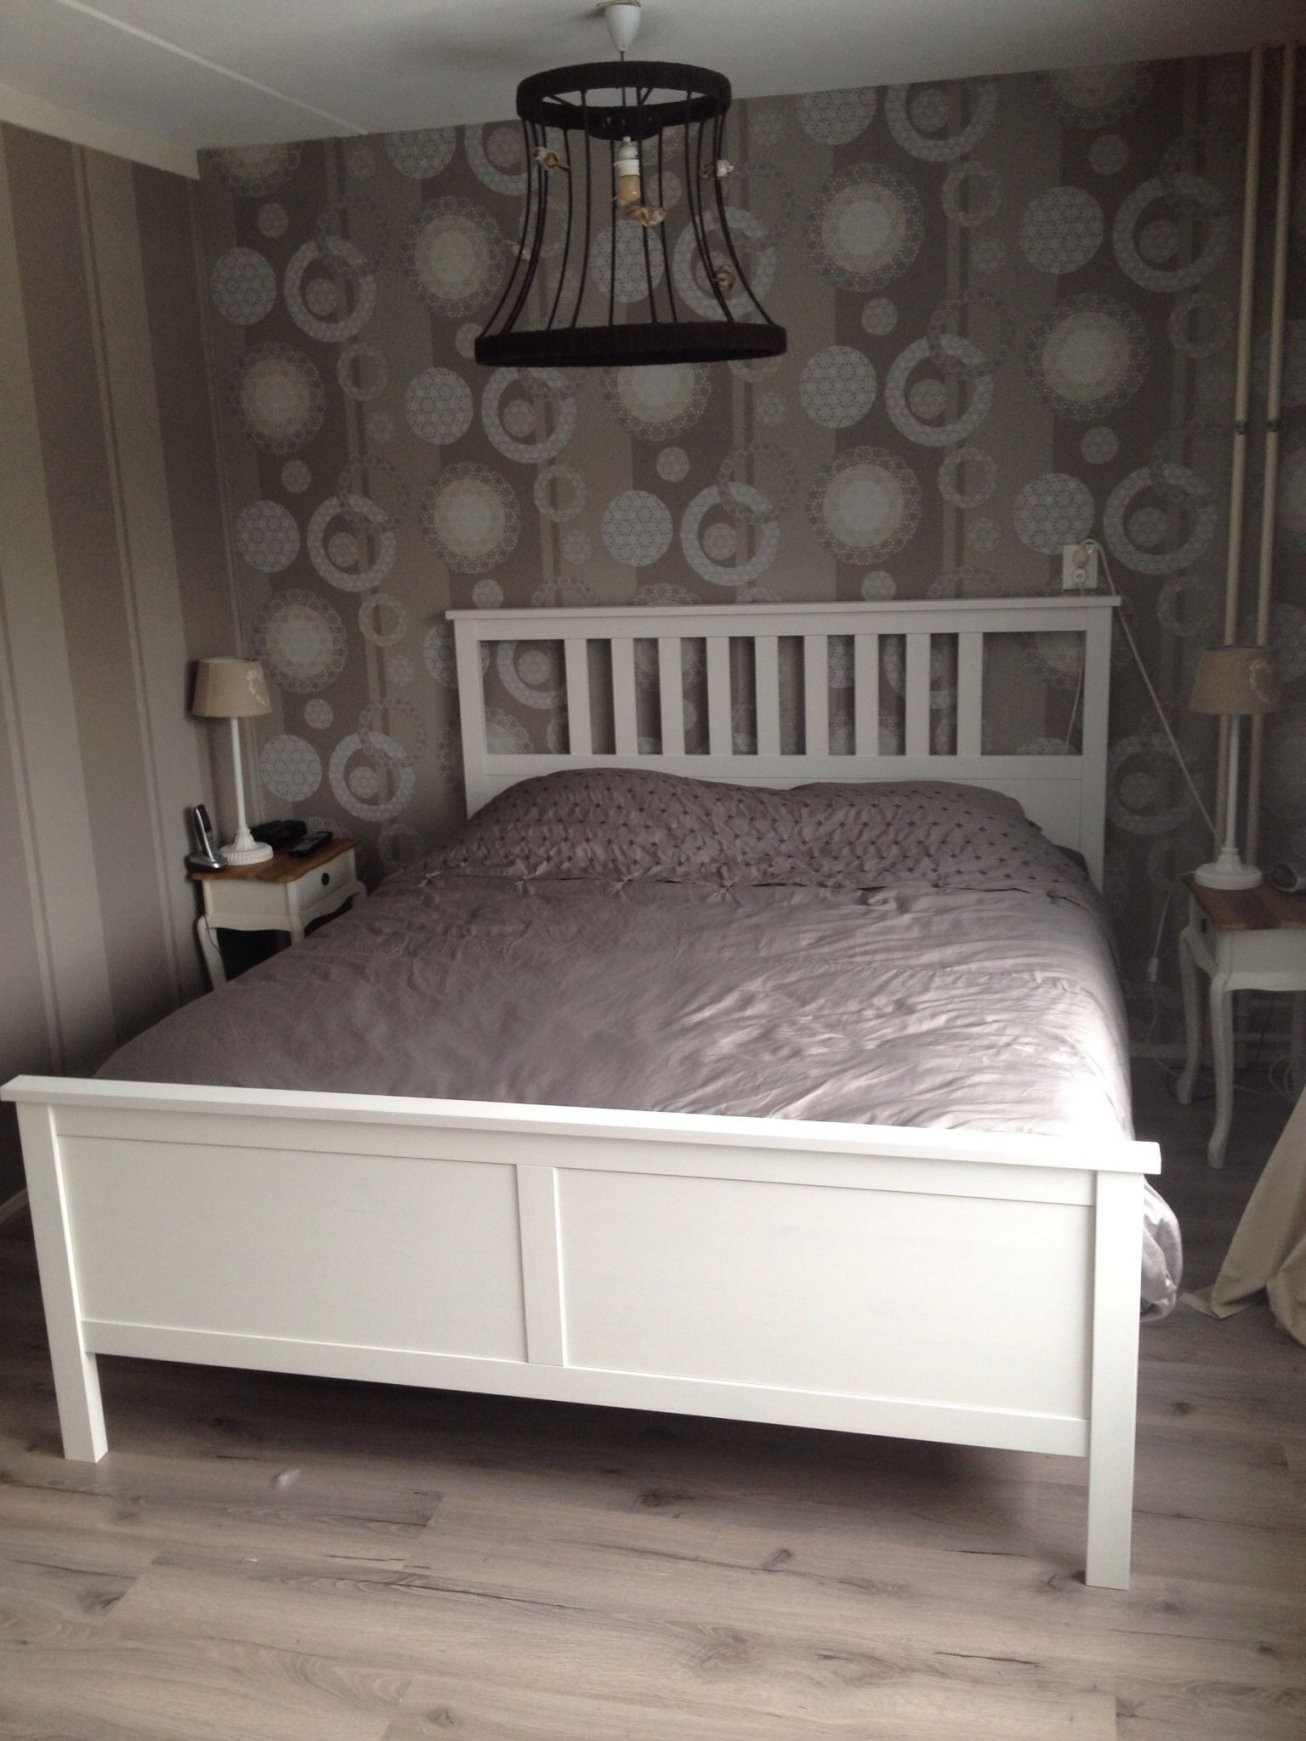 Ikea Hemnes Bed (160 X 200 Cm)  Ideal Bedroom  Pinterest  Hemnes von Ikea Hemnes Bett 160X200 Photo